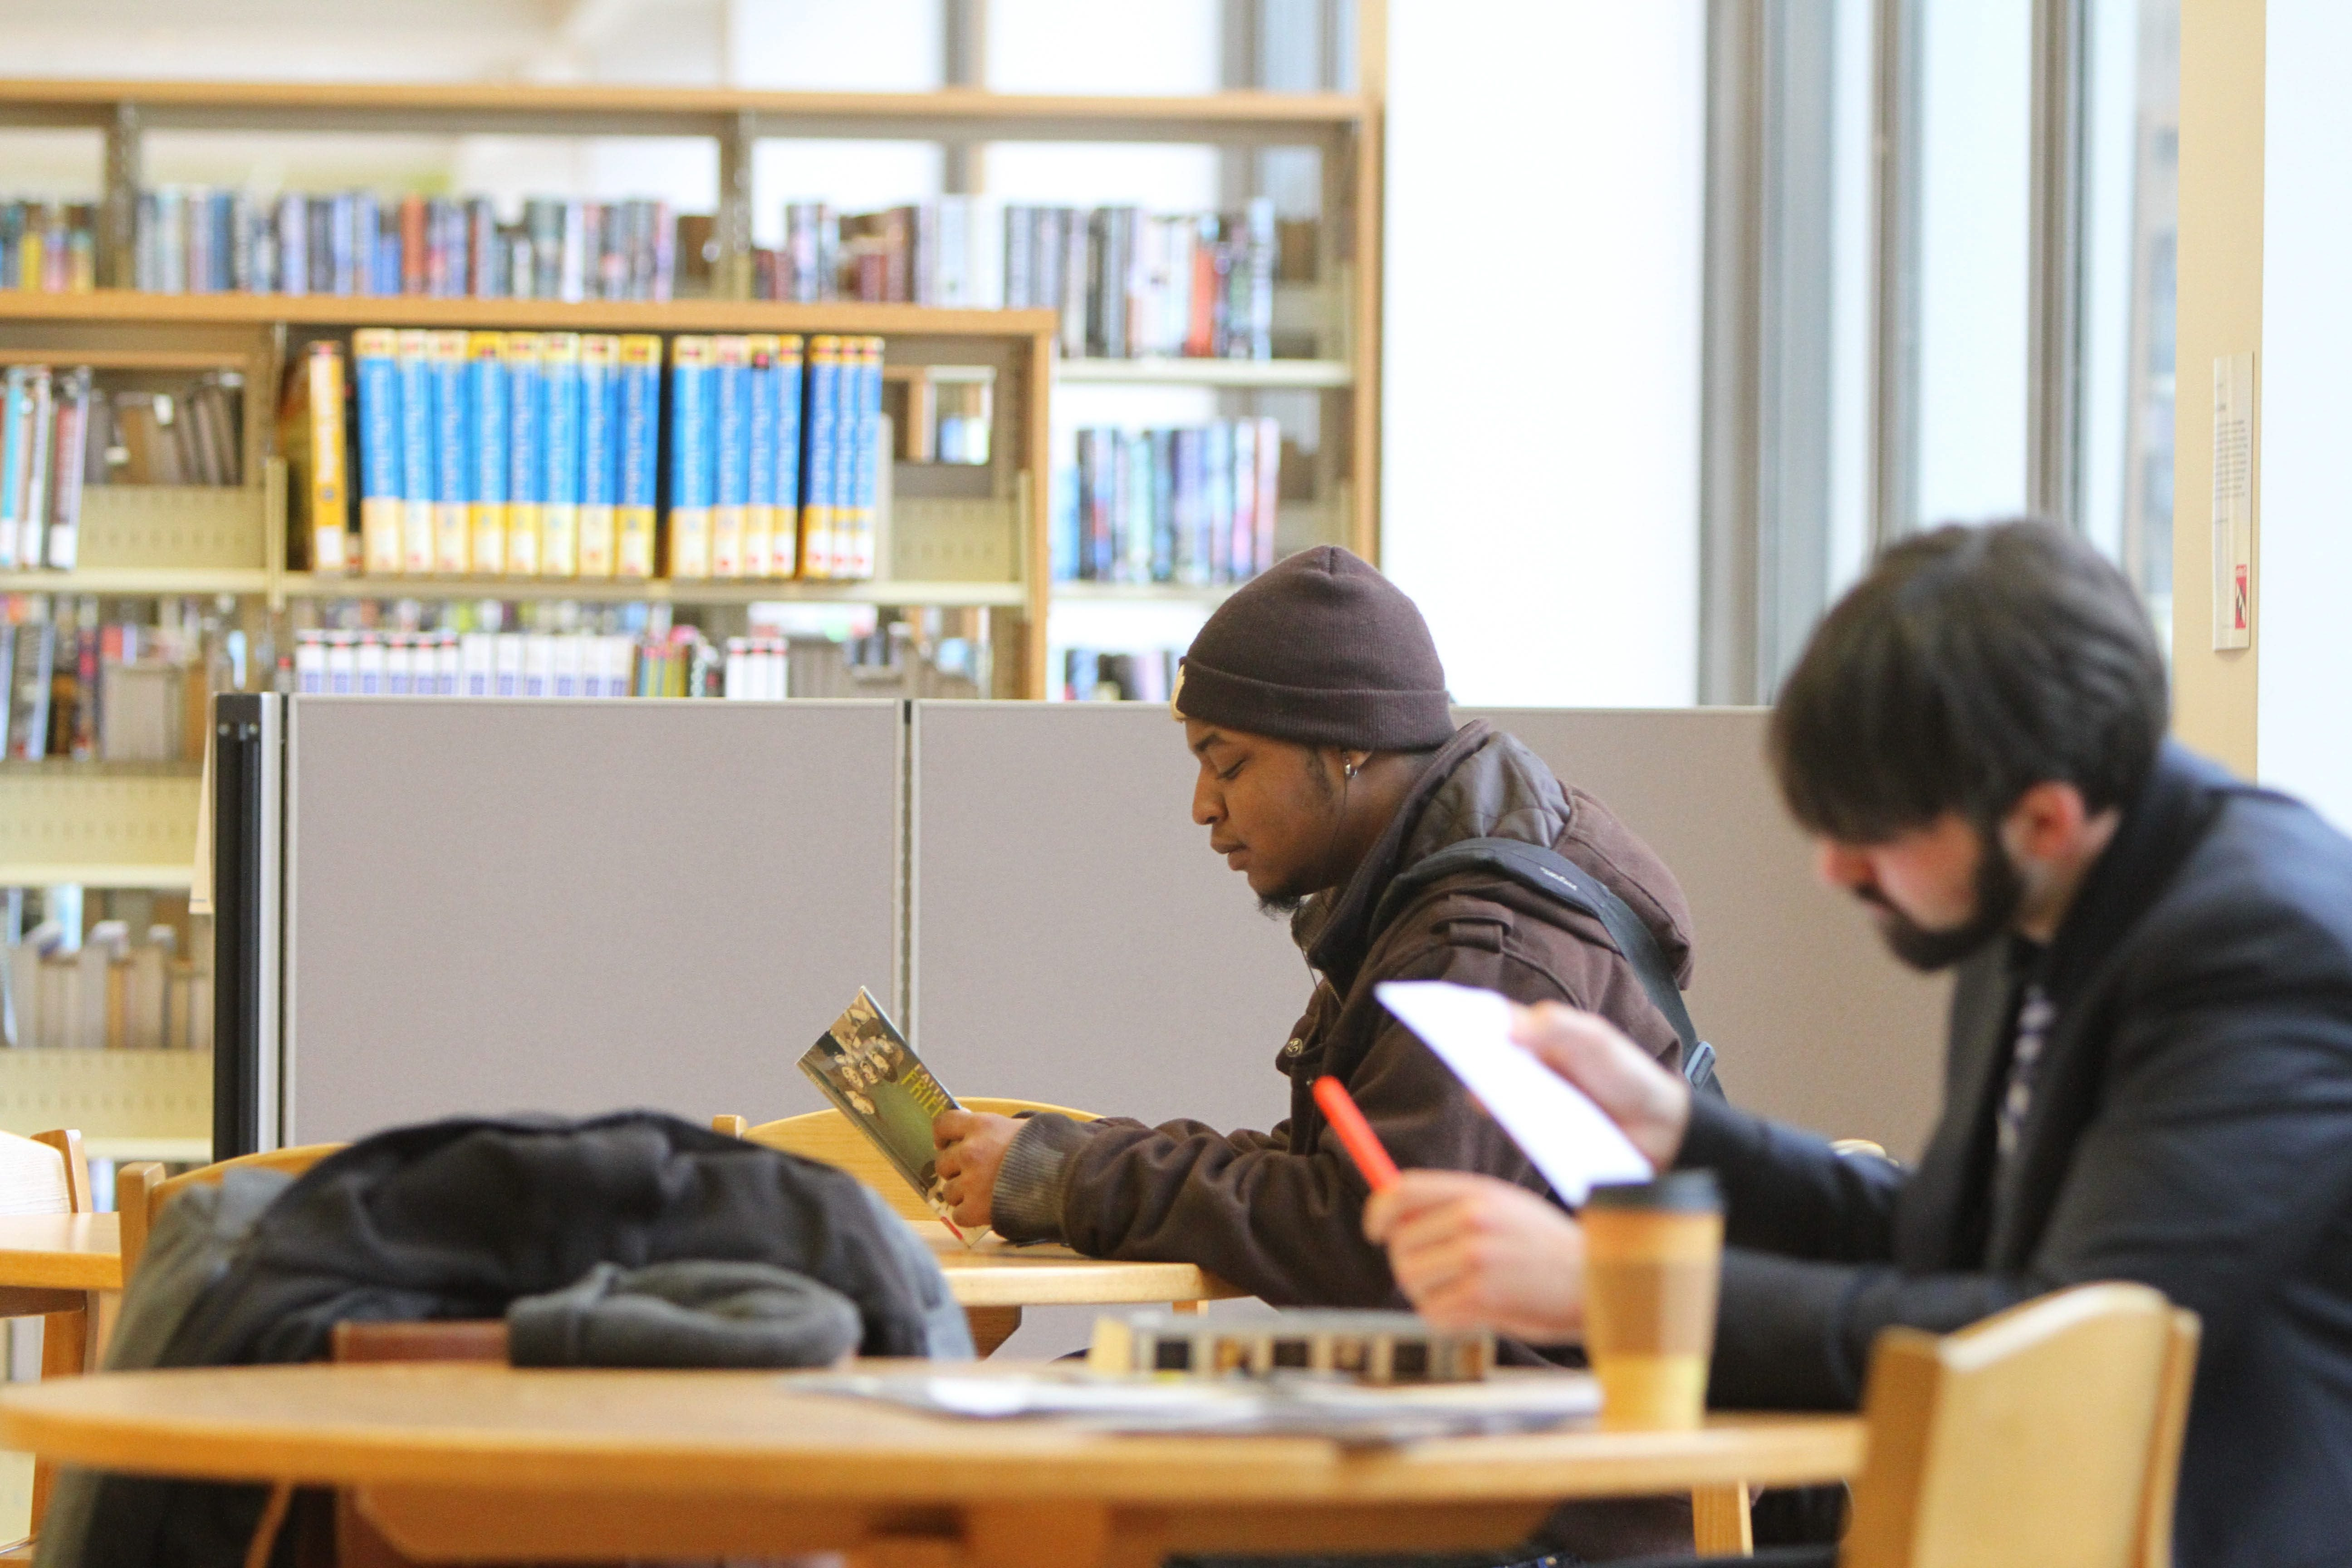 Ryan Sanders, left, of Buffalo, is among Central Library patrons taking advantage of the system's relief from austerity. The director, Mary Jean Jakubowski, favors a referendum to create a taxing district so innovations could be pursued through consistent funding.